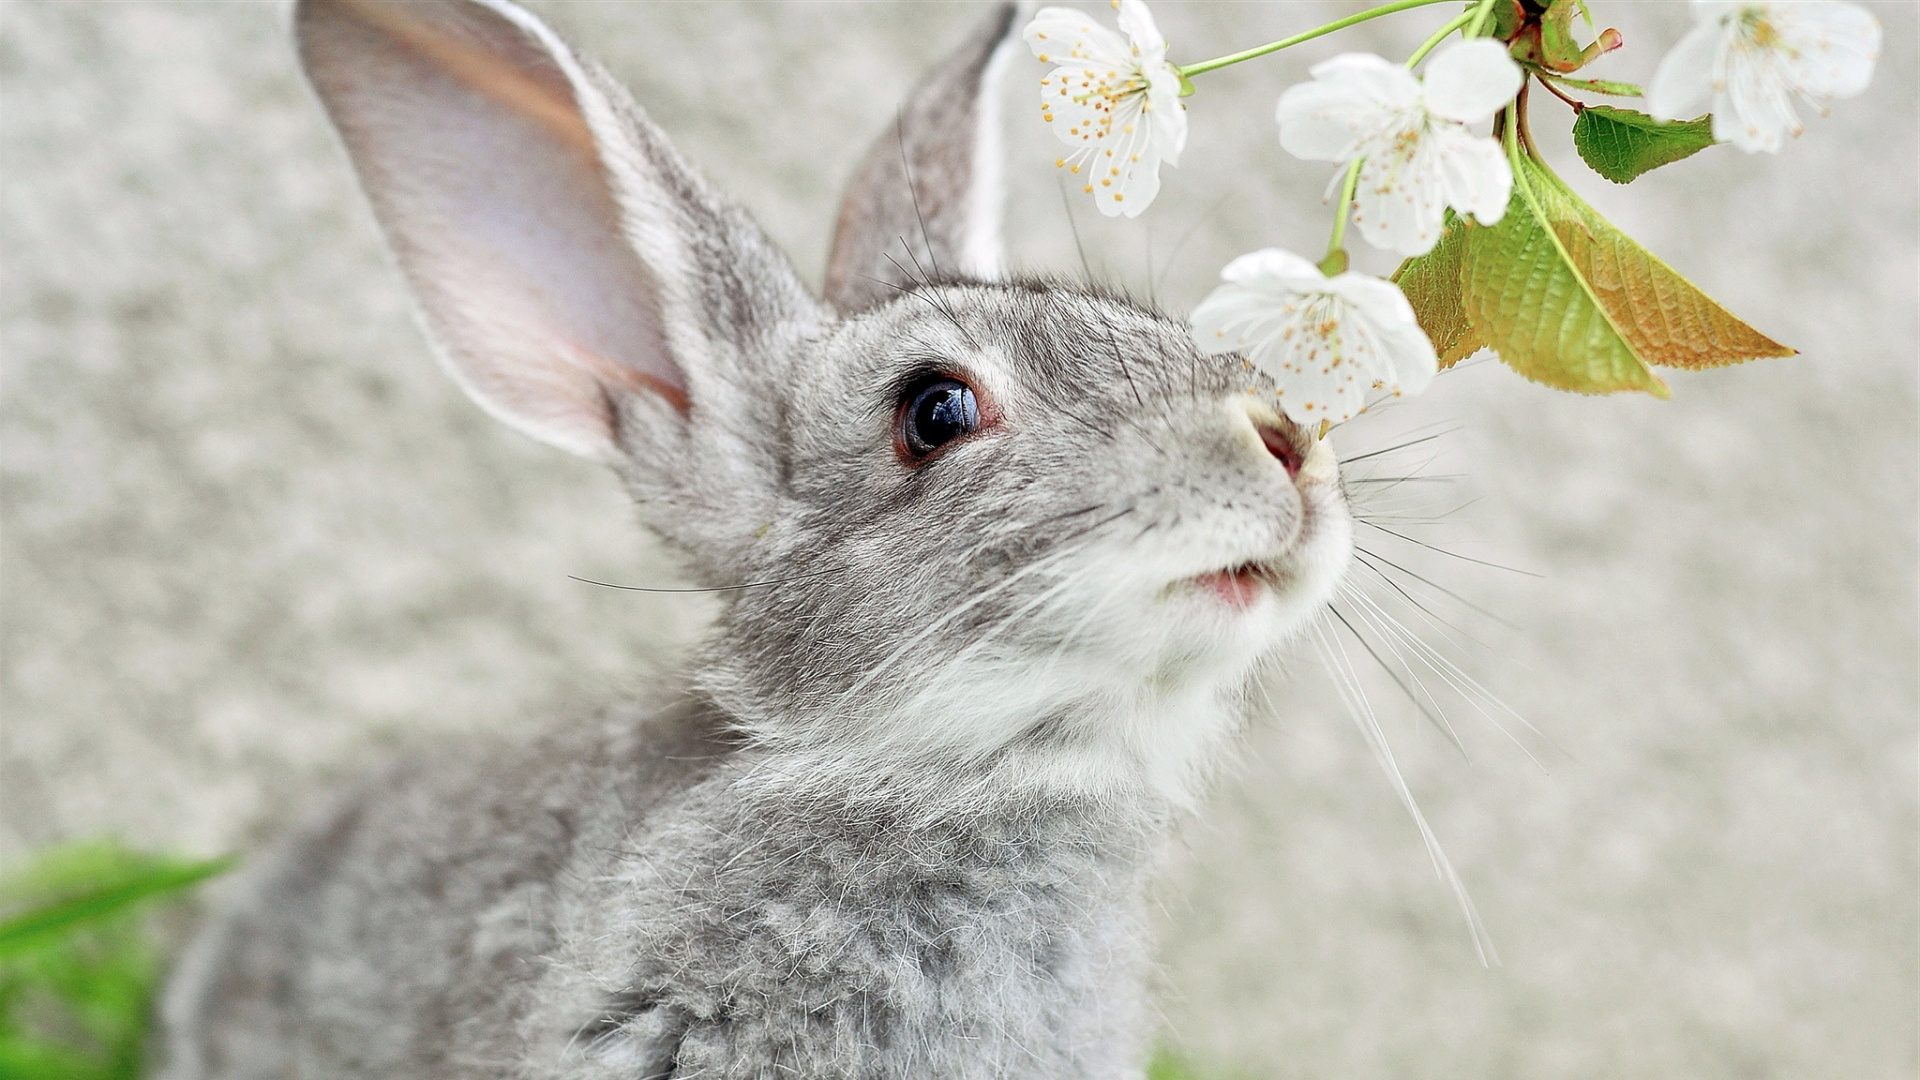 beautiful rabbits images